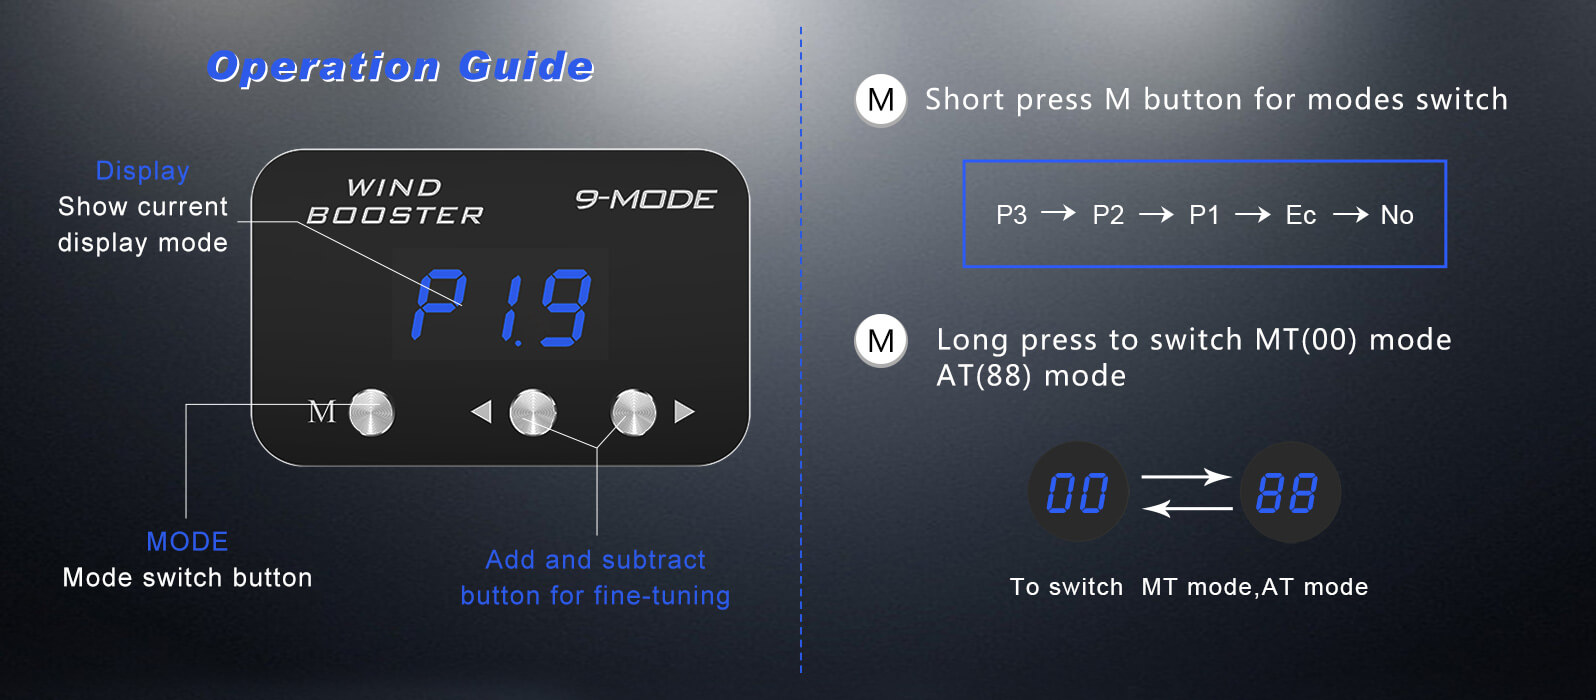 9mode operation guide